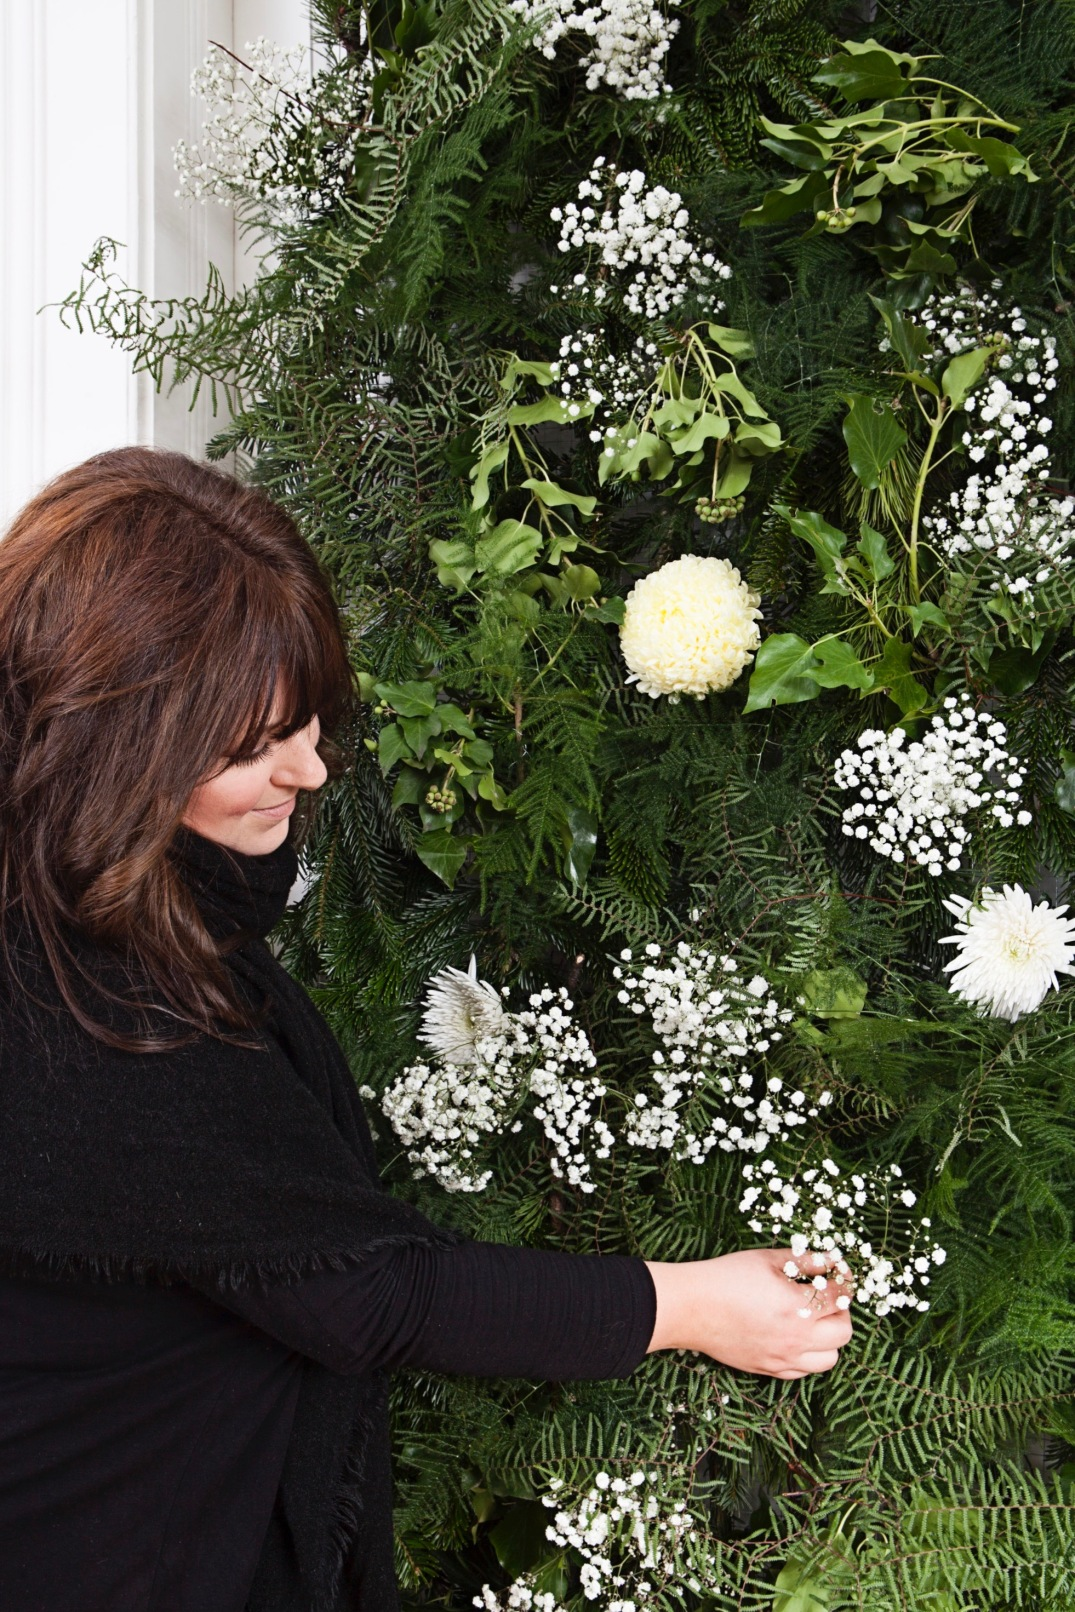 Christmas Flower Wall made of pine,fir & baby's breath